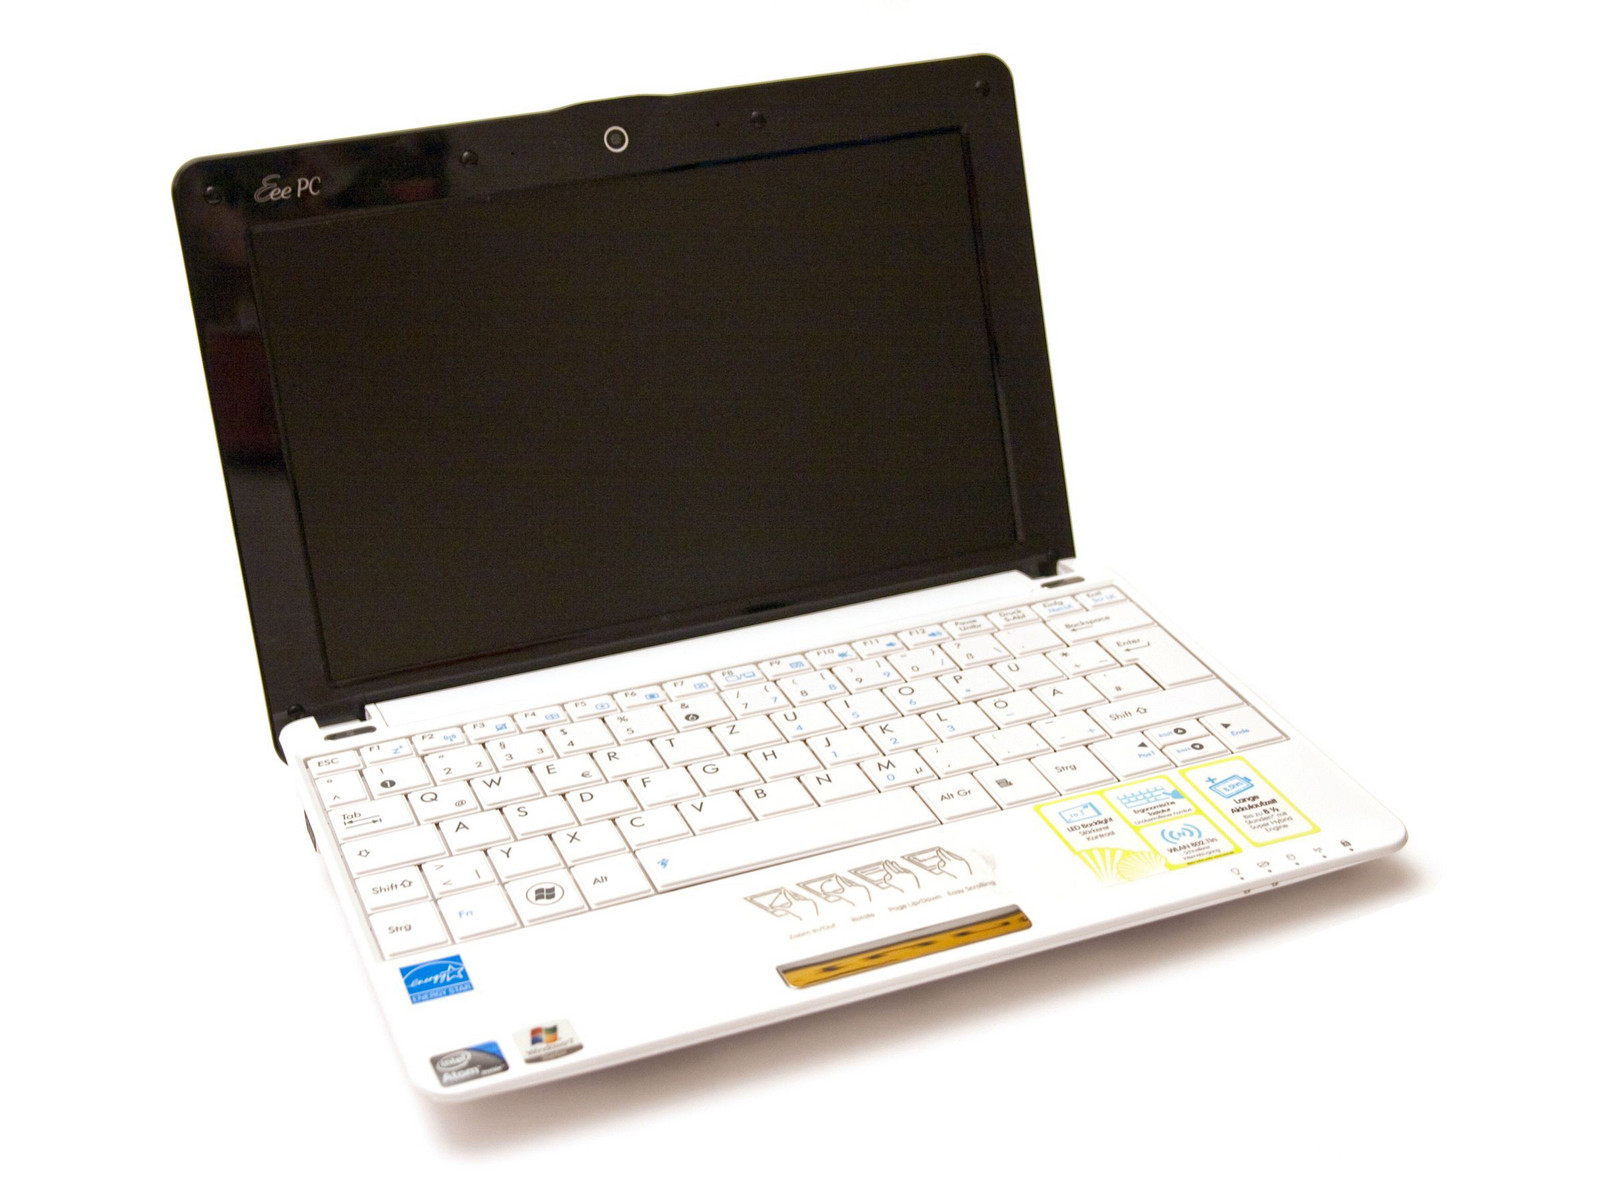 ASUS EEE PC 1005PX VGA WINDOWS 7 X64 DRIVER DOWNLOAD